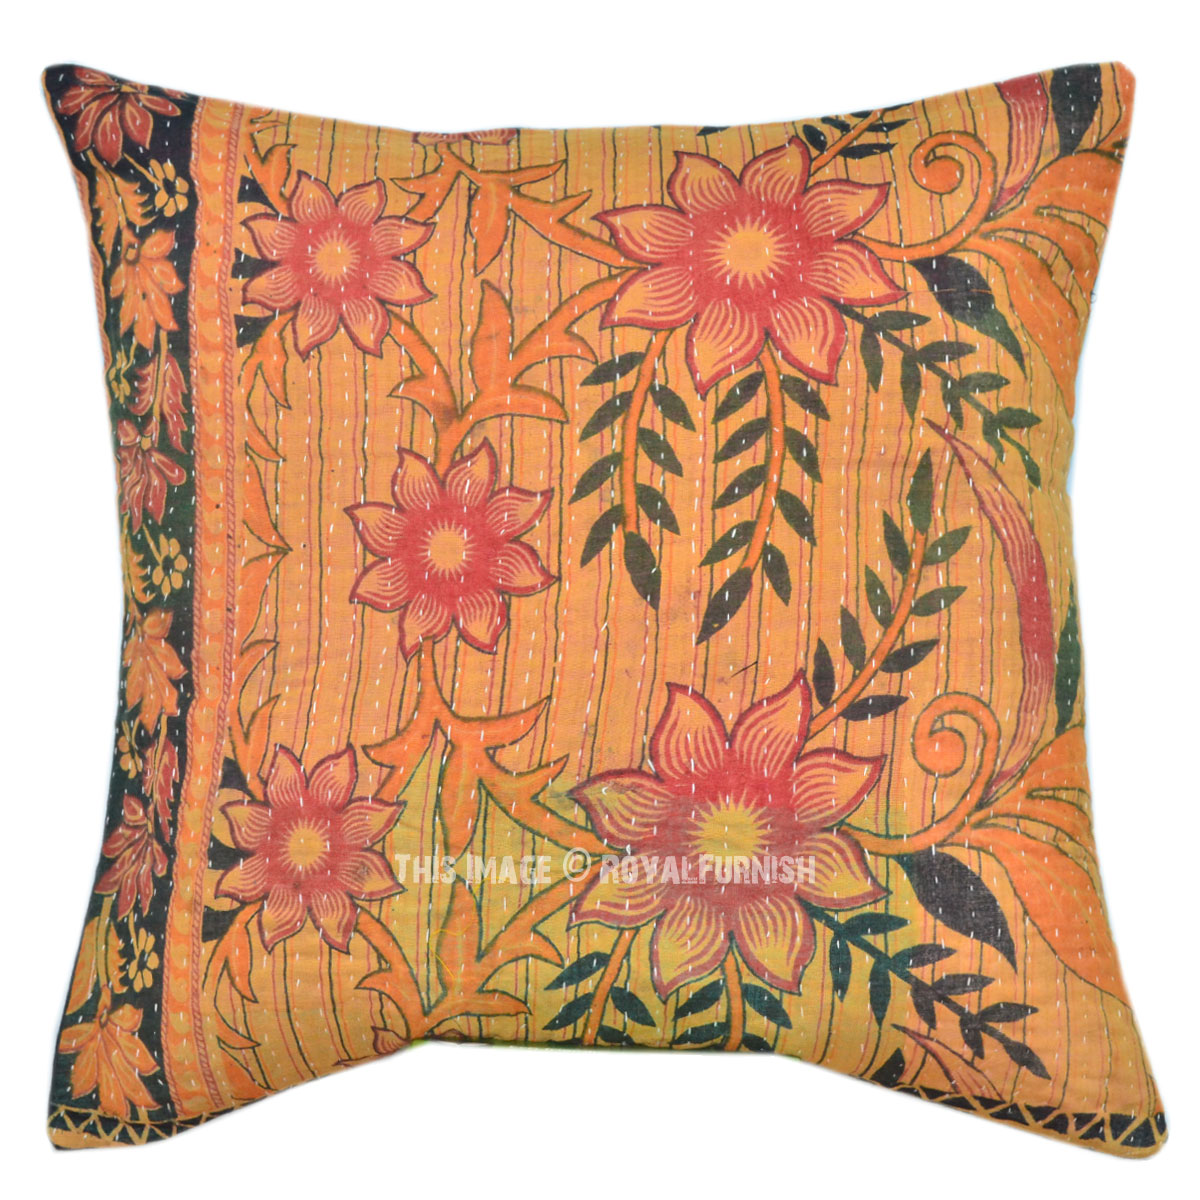 16x16 Decorative Pillow Covers : 16x16 Indian Kantha Quilted Pillow Cover - RoyalFurnish.com